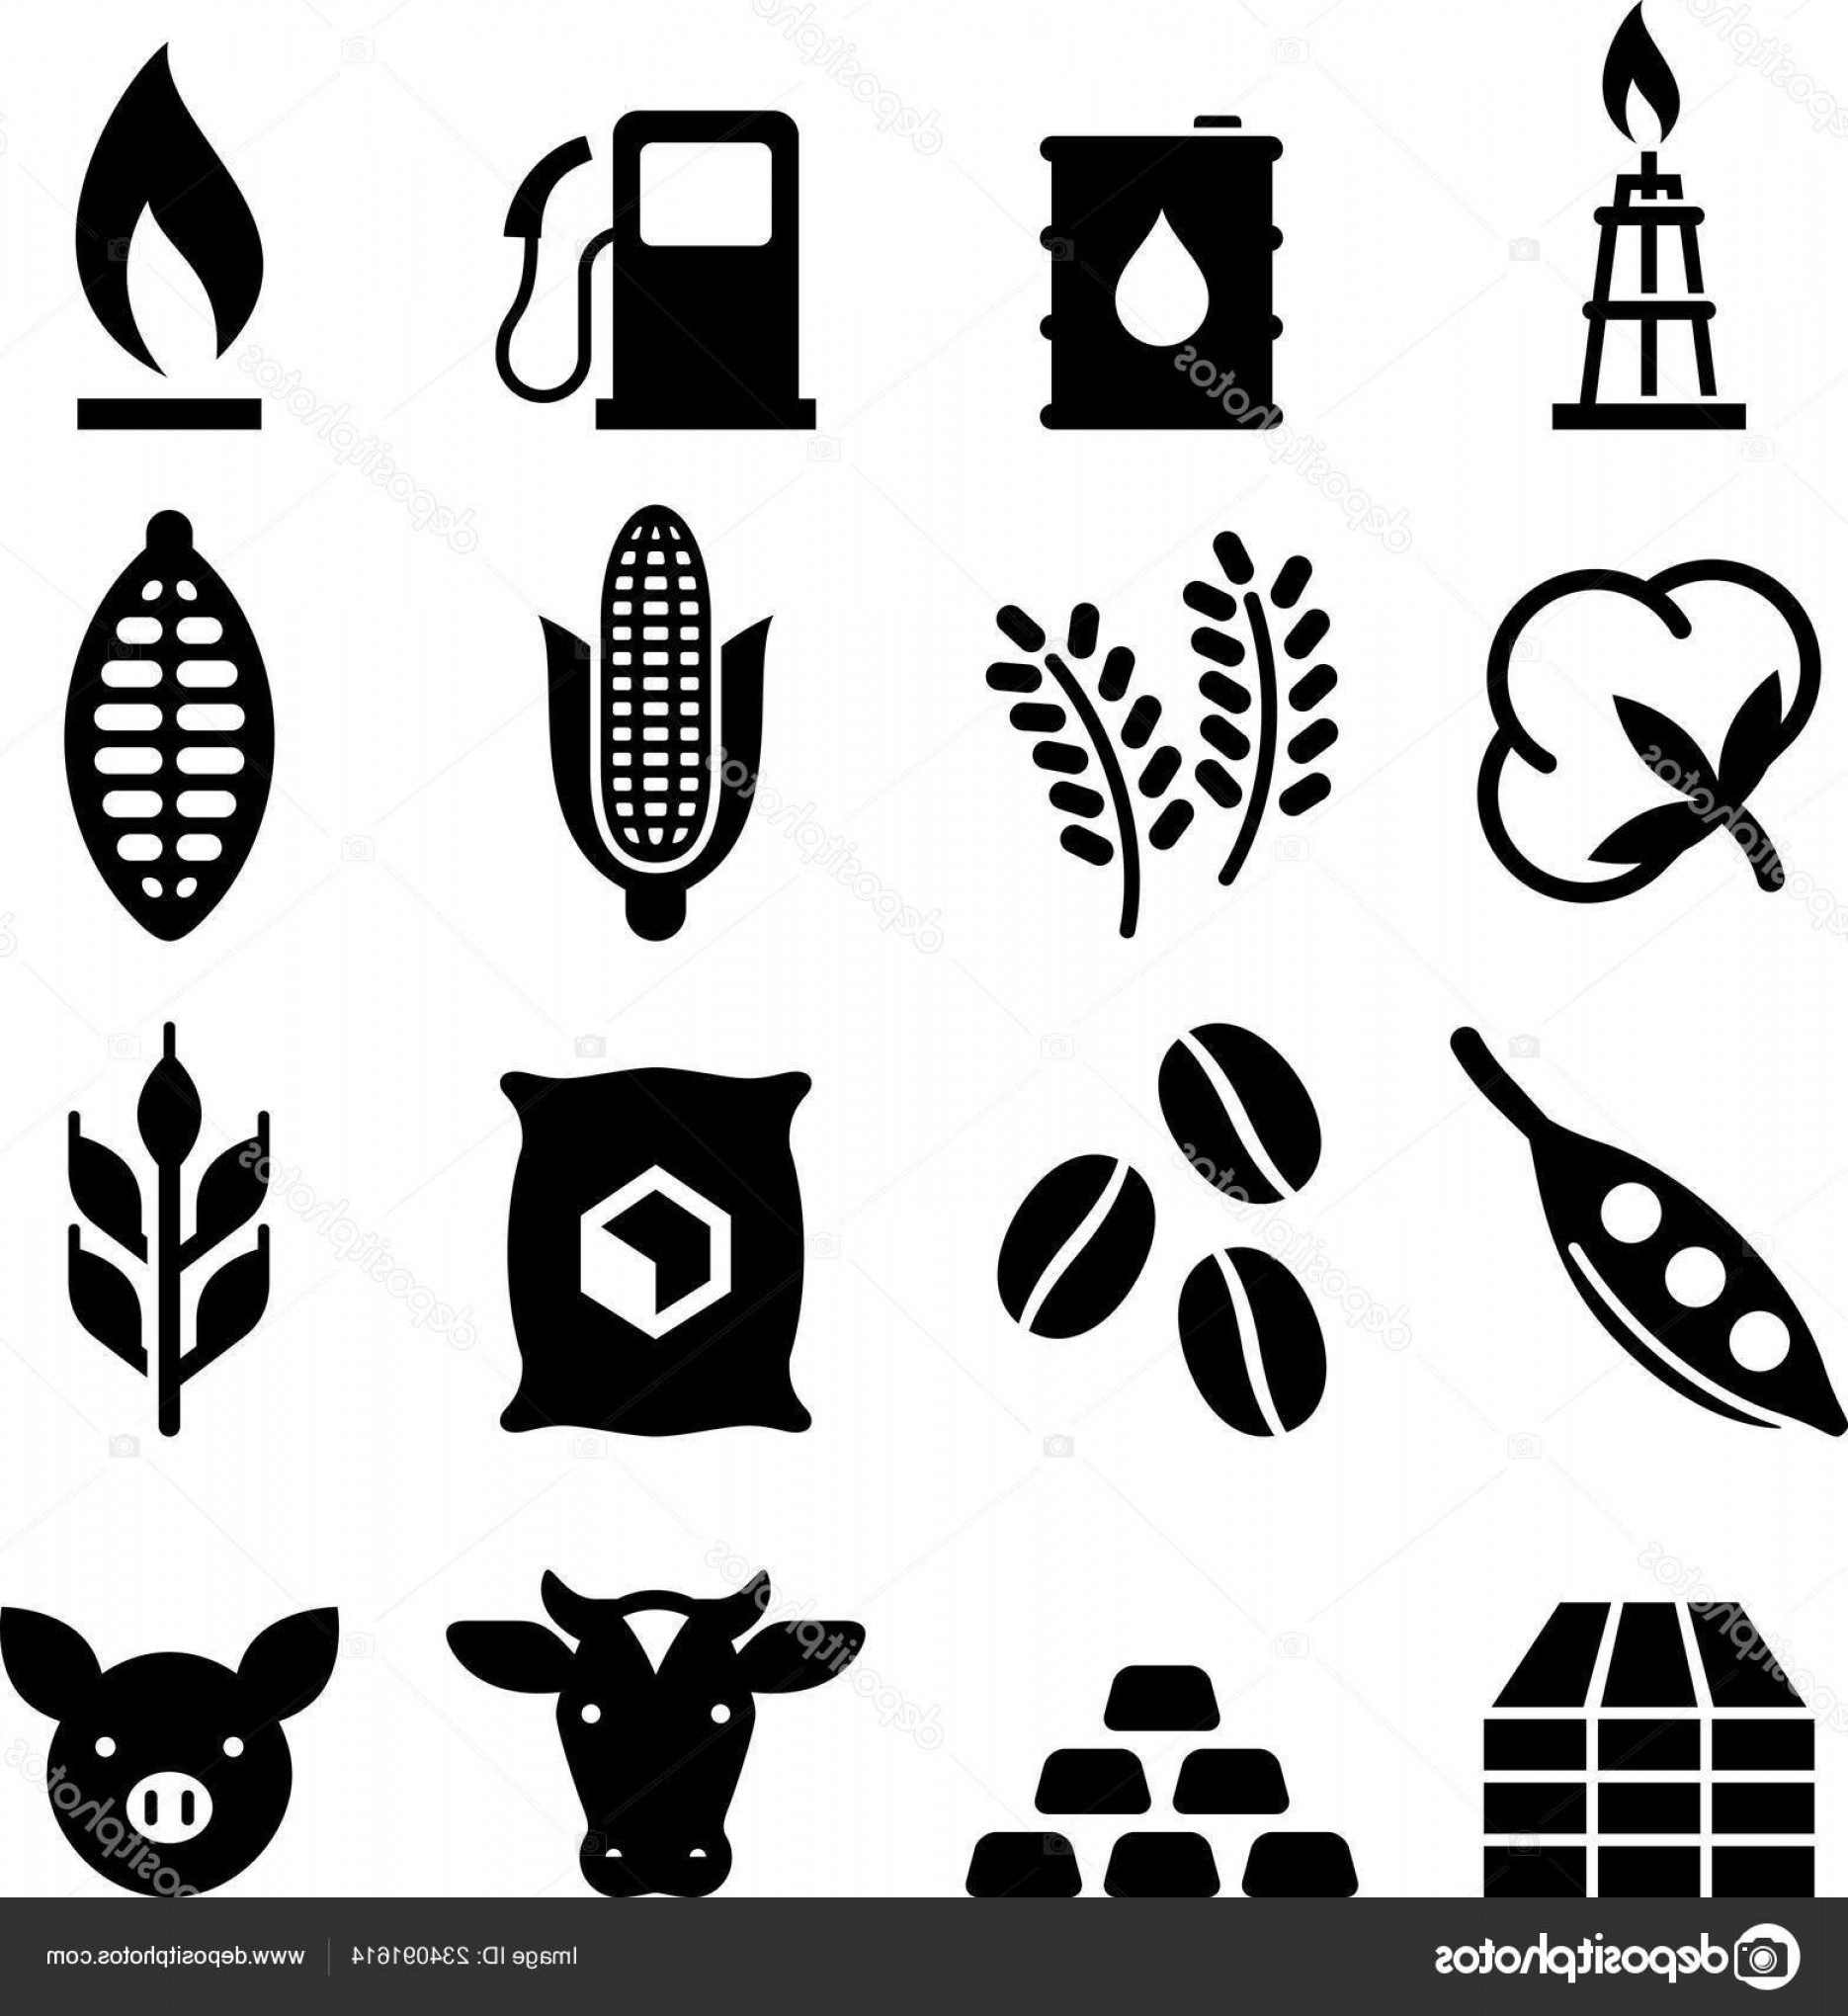 In Icon Stock Vector: Stock Illustration Commodities Trading Icon Set Vector